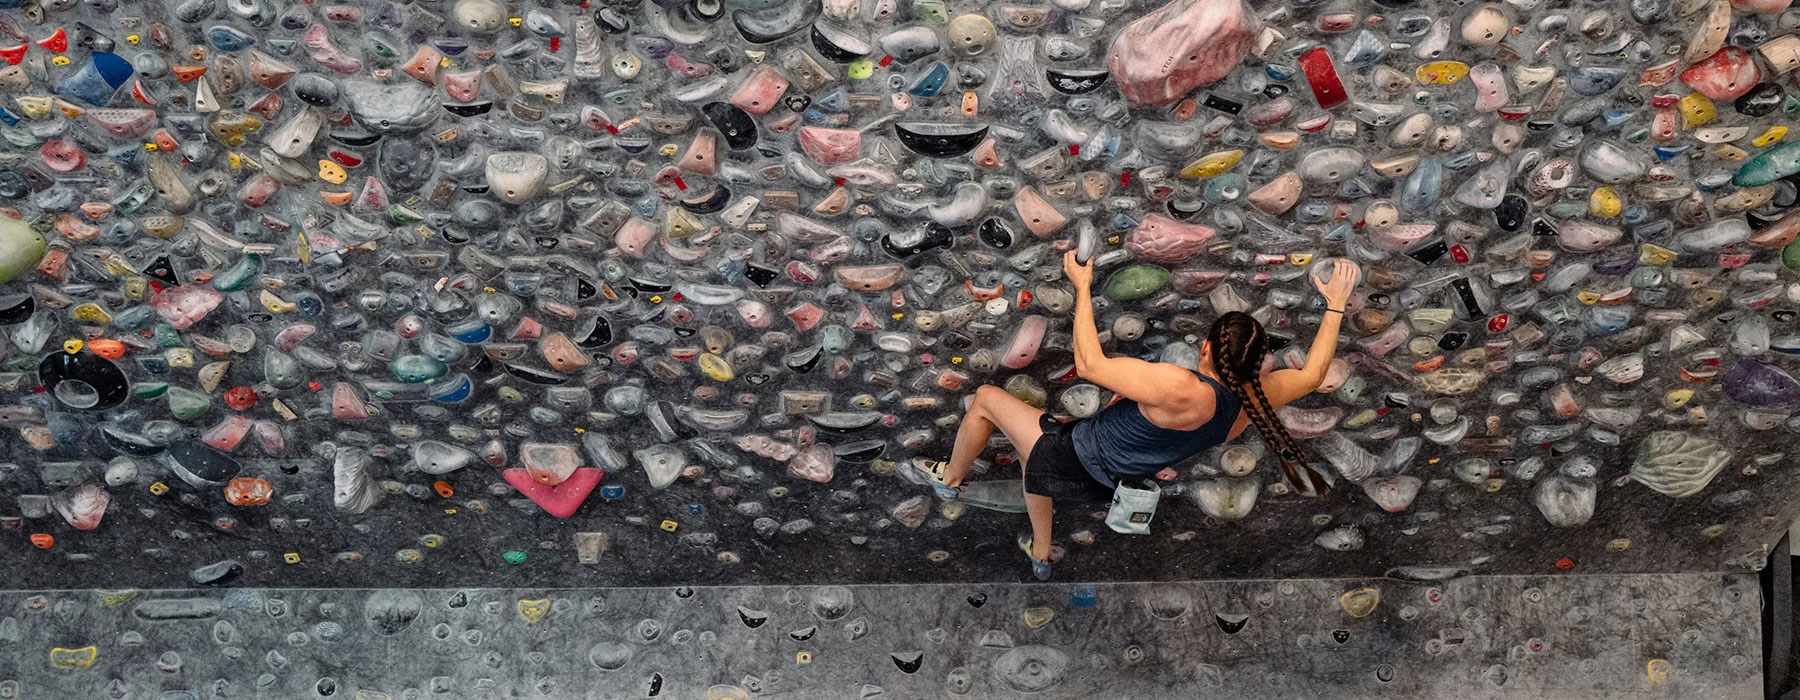 An edge to edge narrow image of a bouldering wall covered in holds and a solo person climbing on the right hand side.